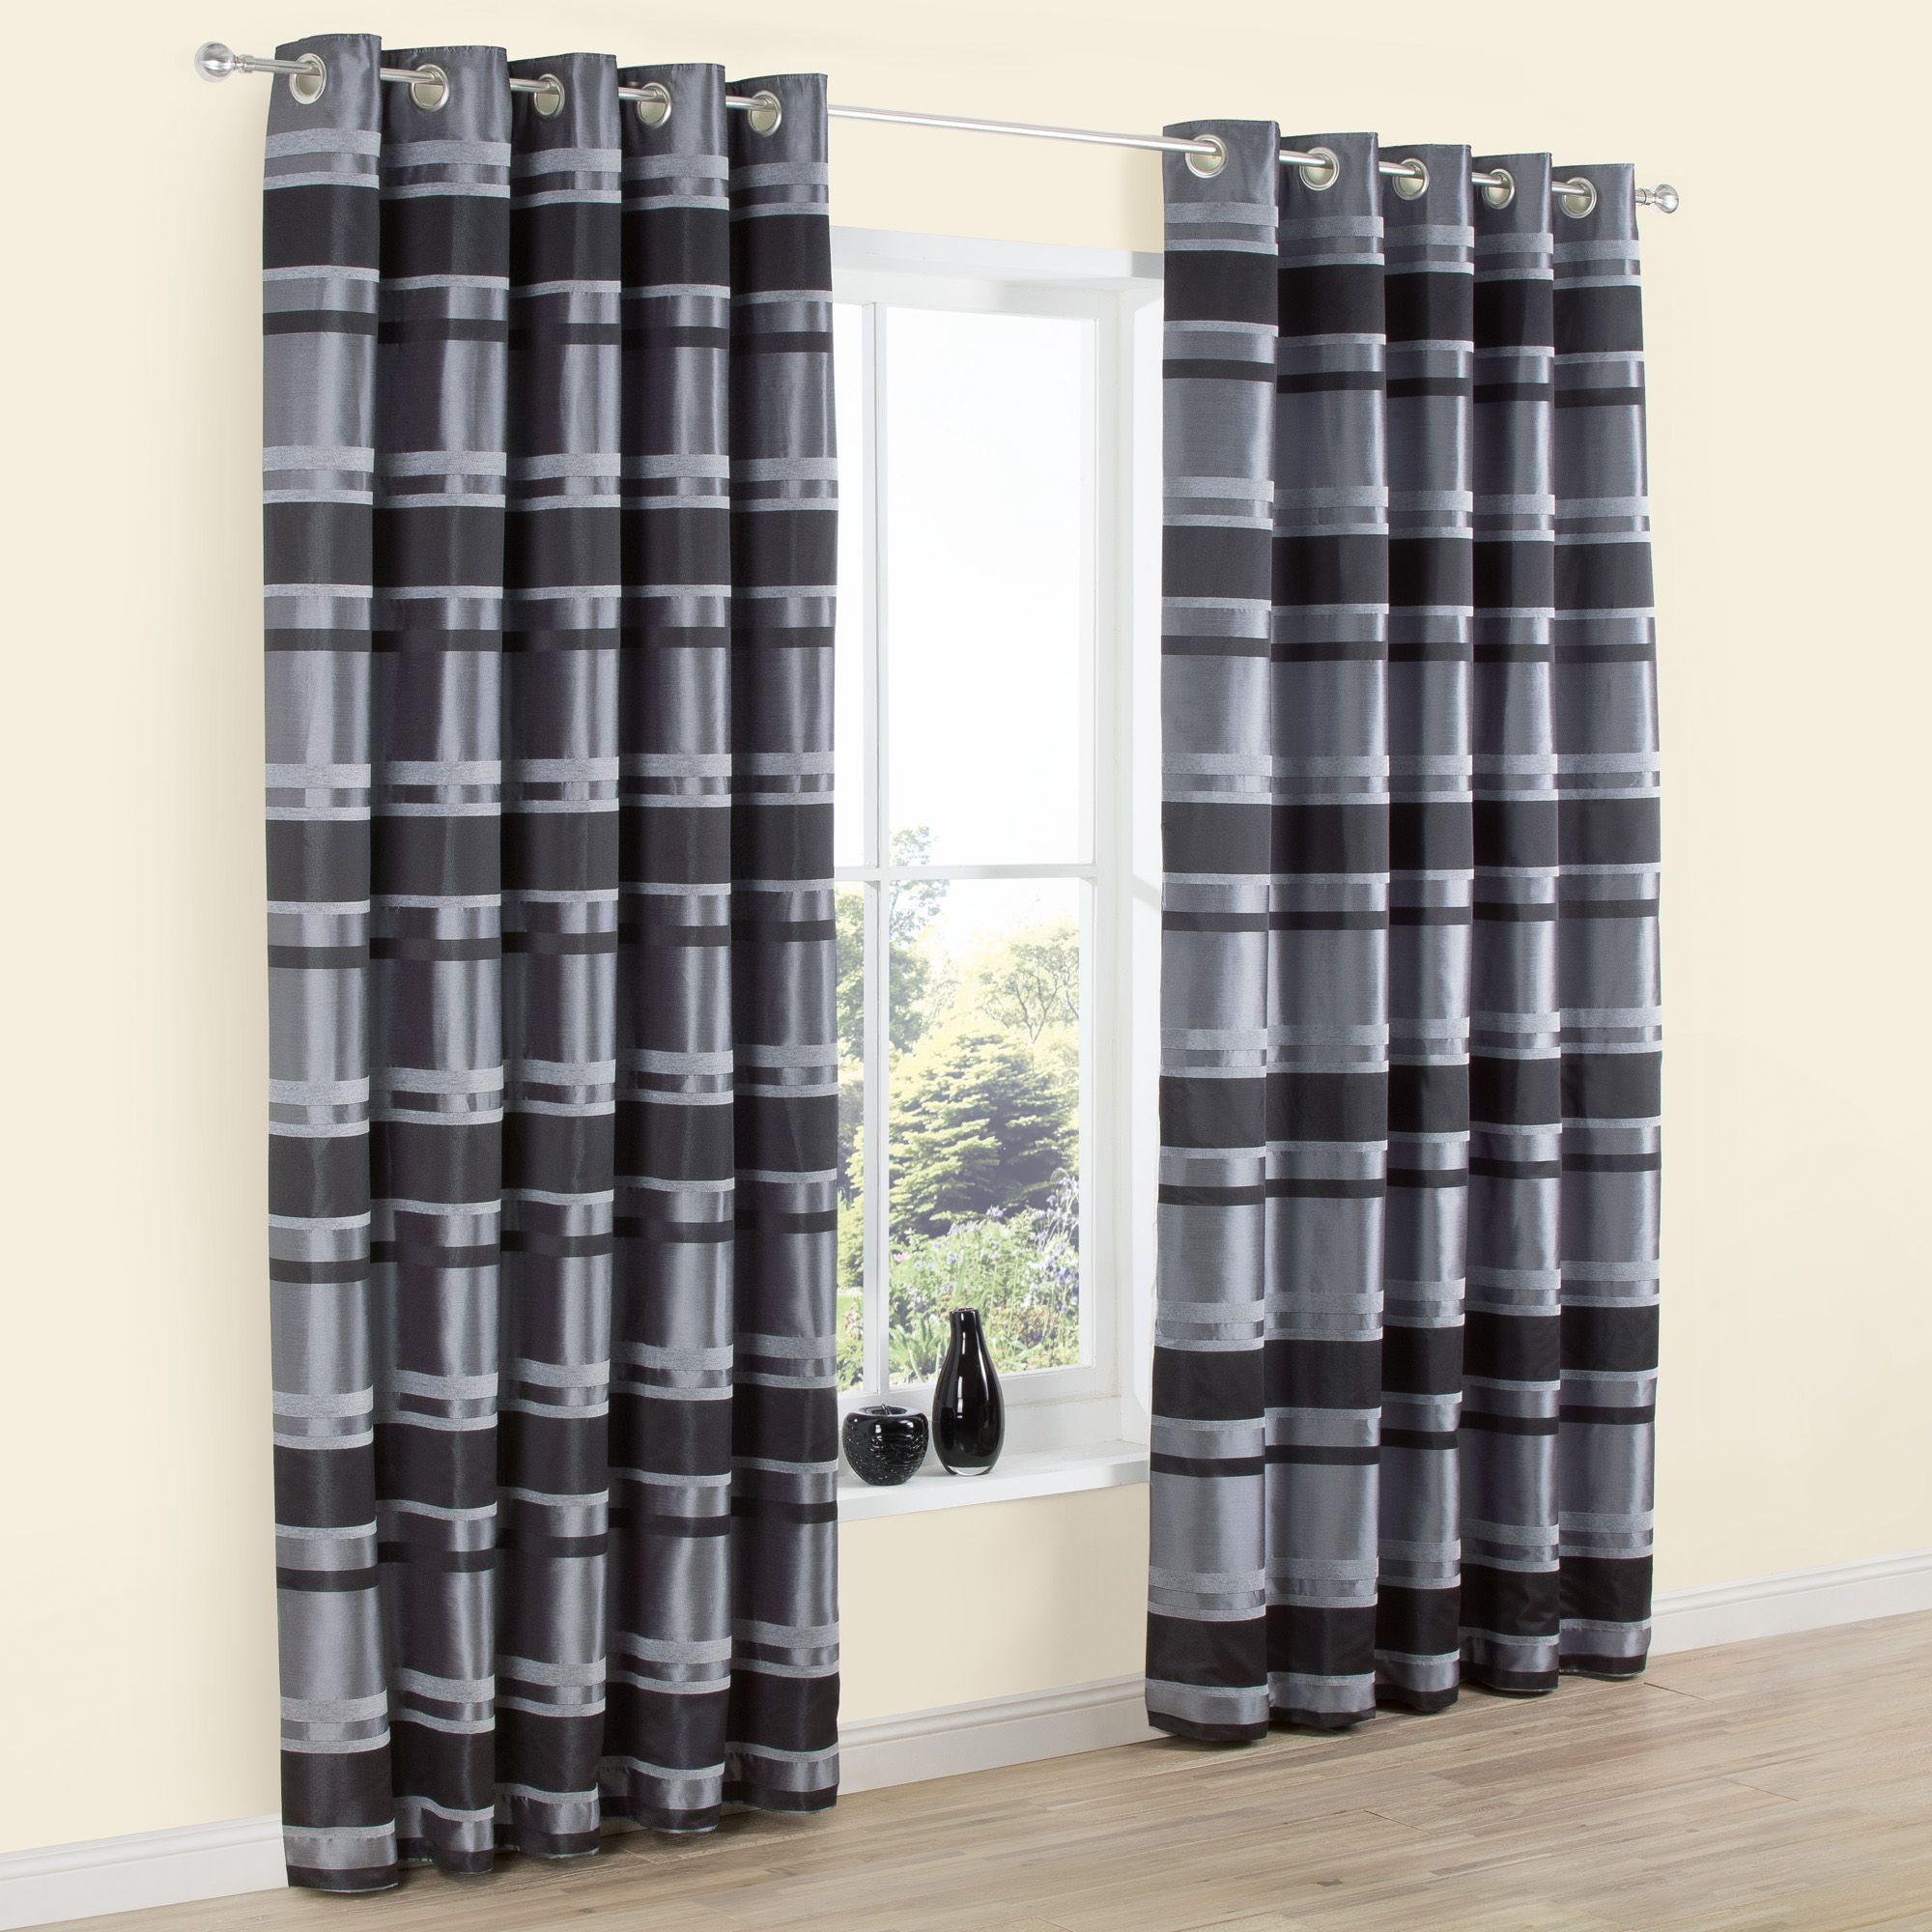 striped storm lewis padstow pencil curtains lined x pair pdp blackout drop buyjohn pleat main john stripe rsp at